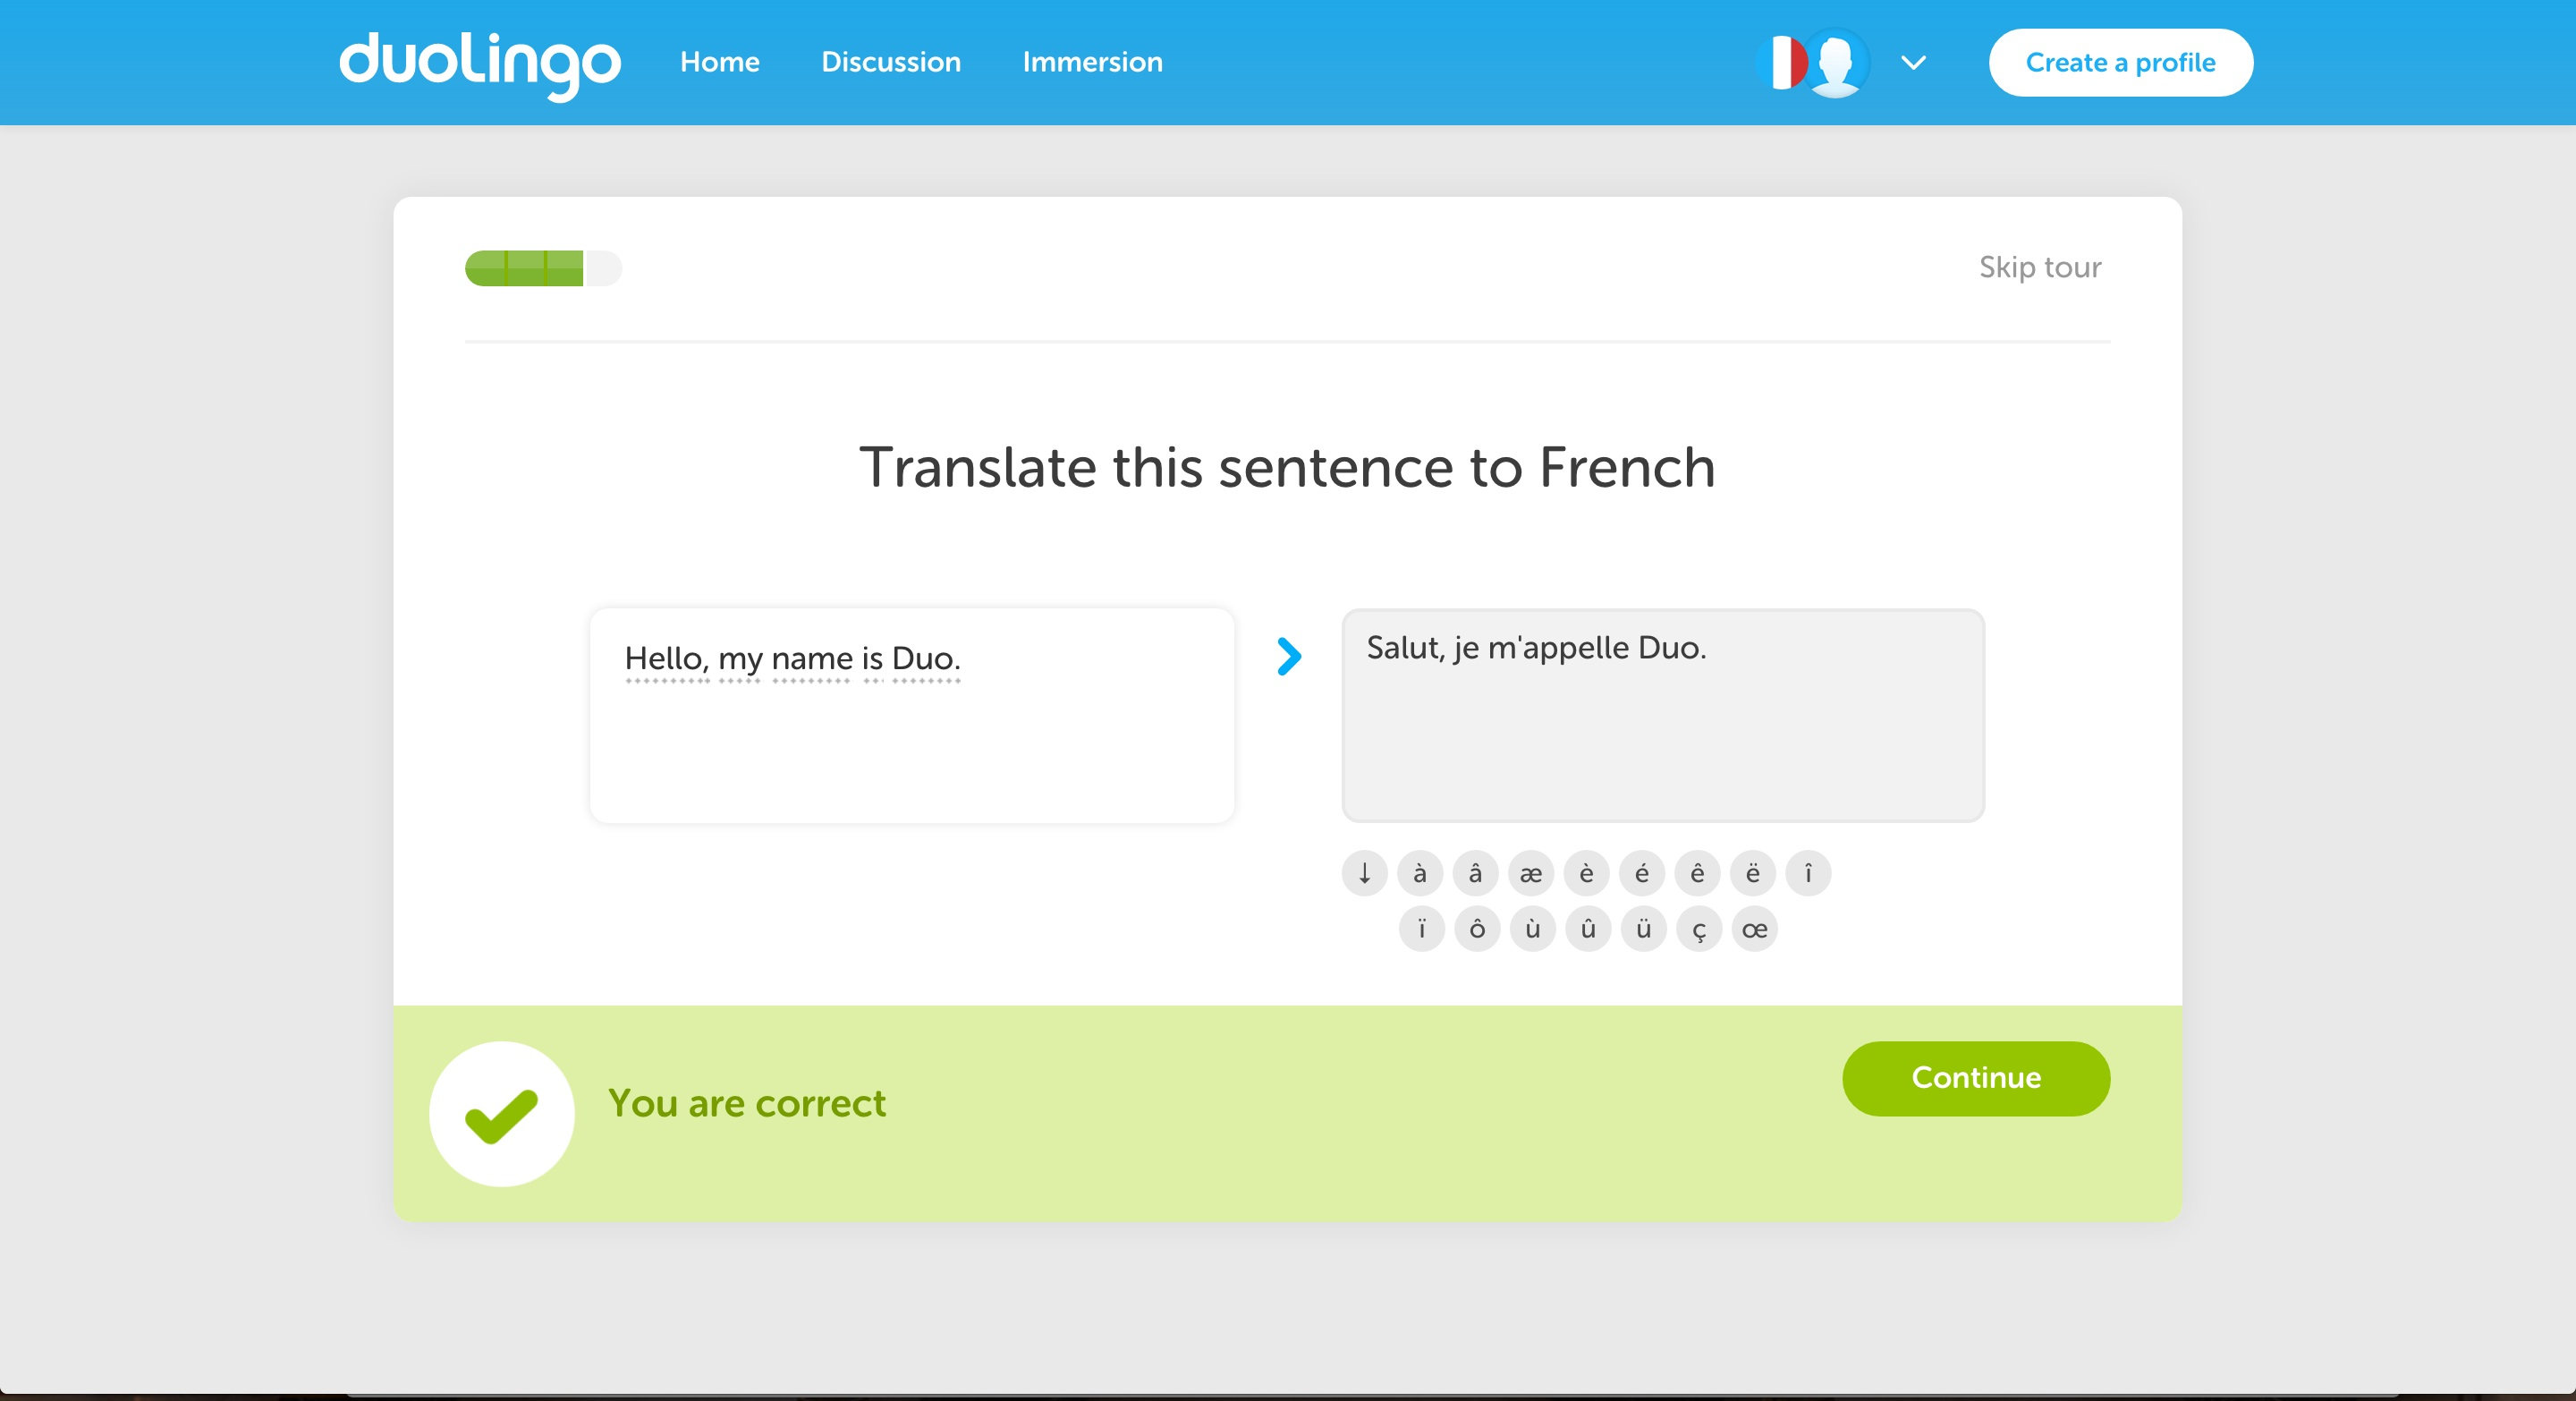 duolingo user onboarding step 8